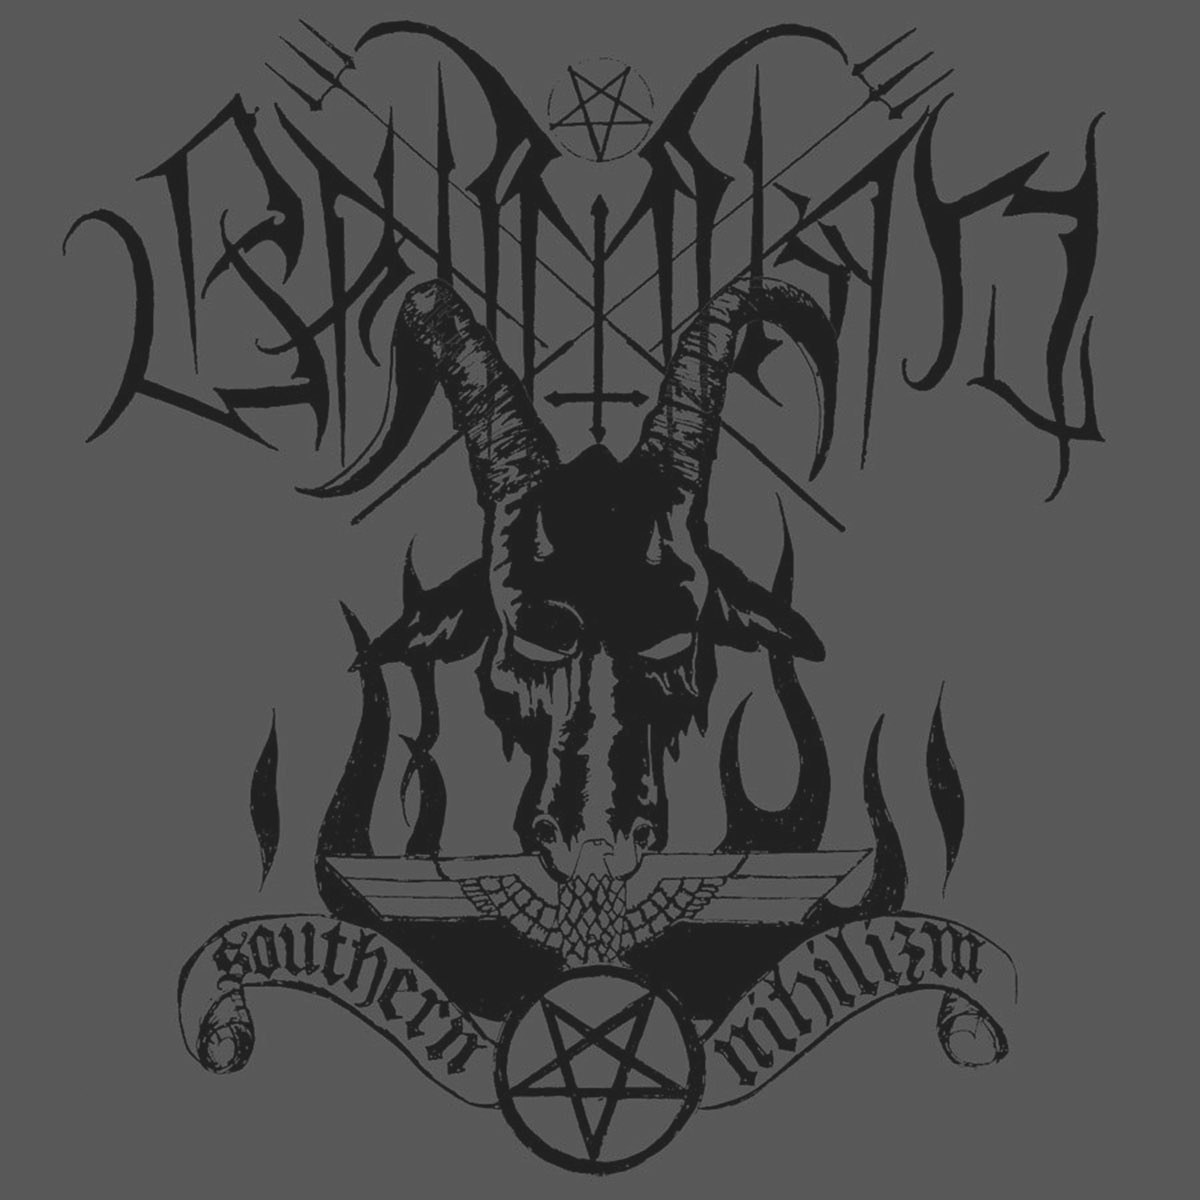 Review for Bahimiron - Southern Nihilizm